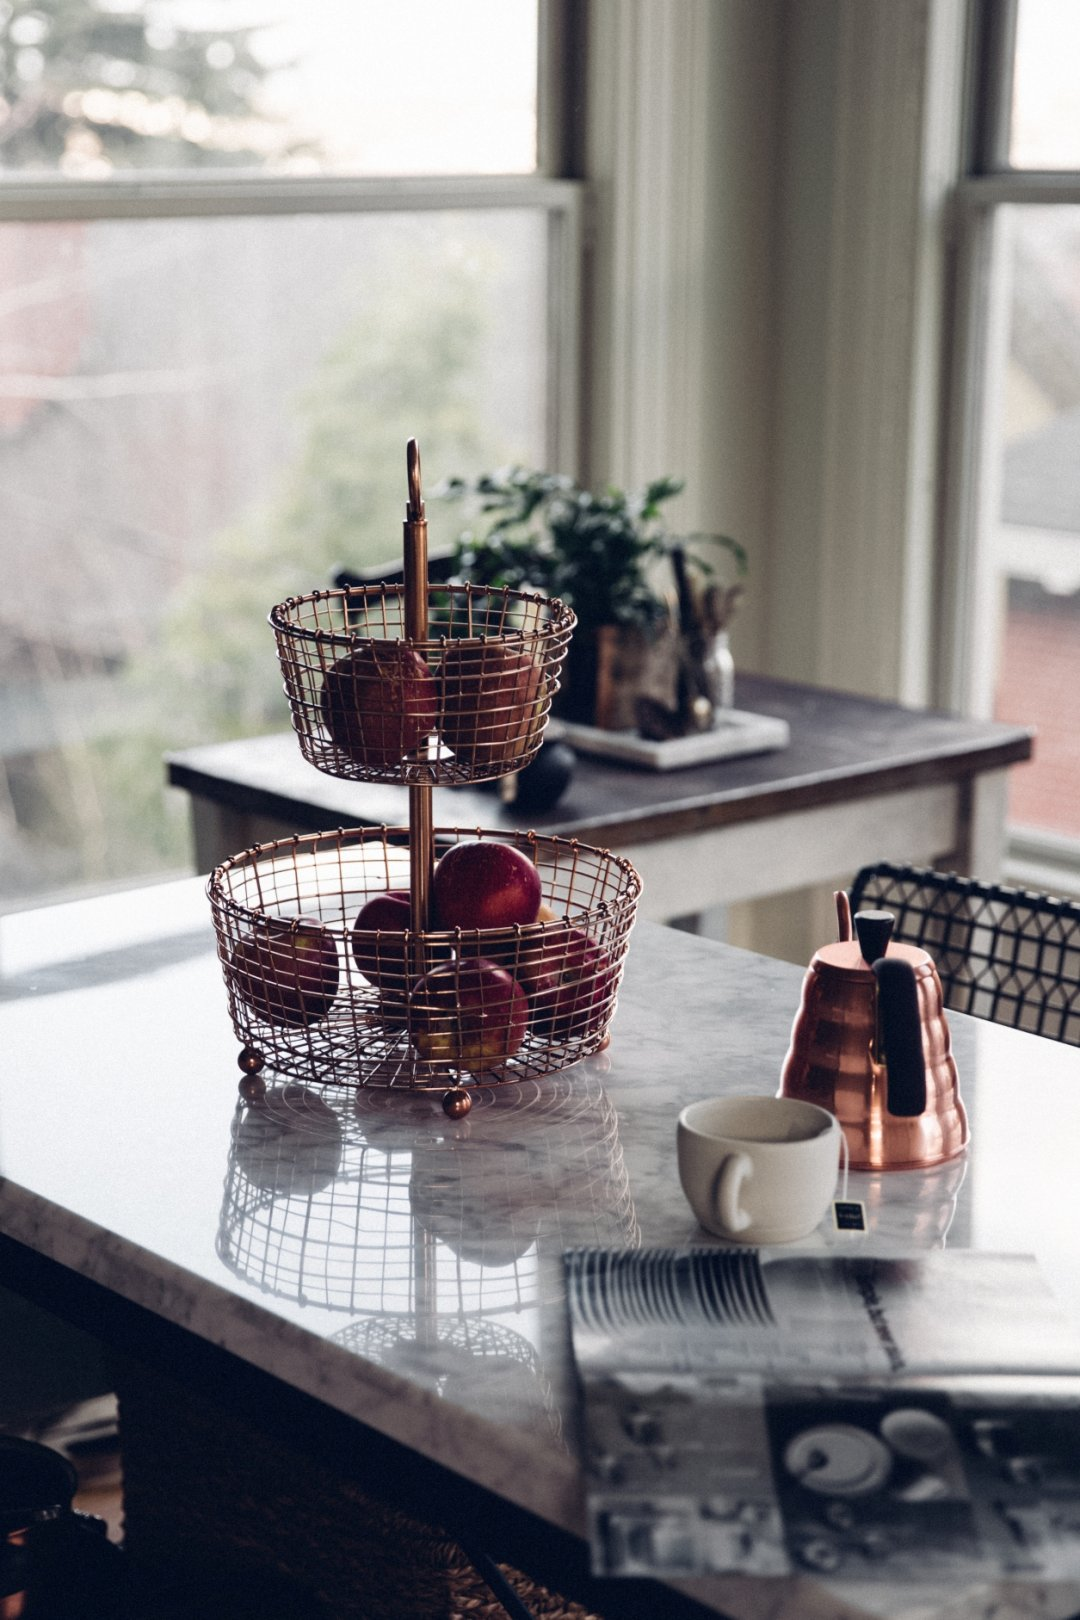 Kitchen island with 2-tier copper fruit basket and copper kettle, with mug steeping tea